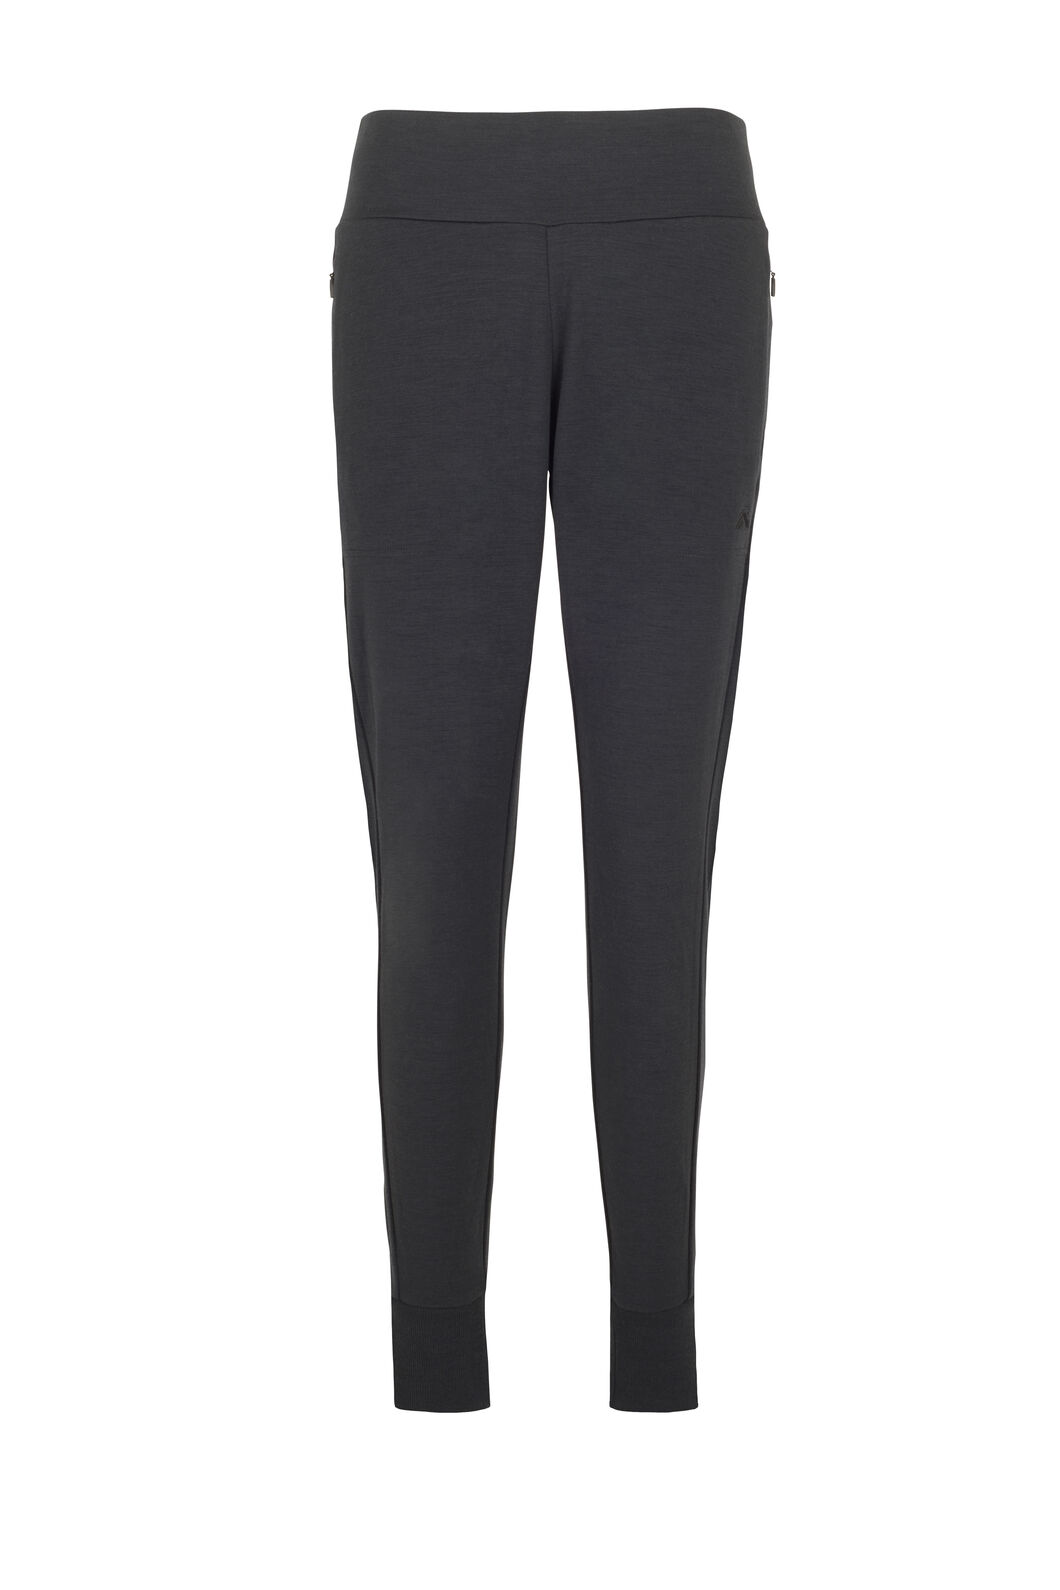 Macpac Merino Blend Track Pants - Women's, Black, hi-res